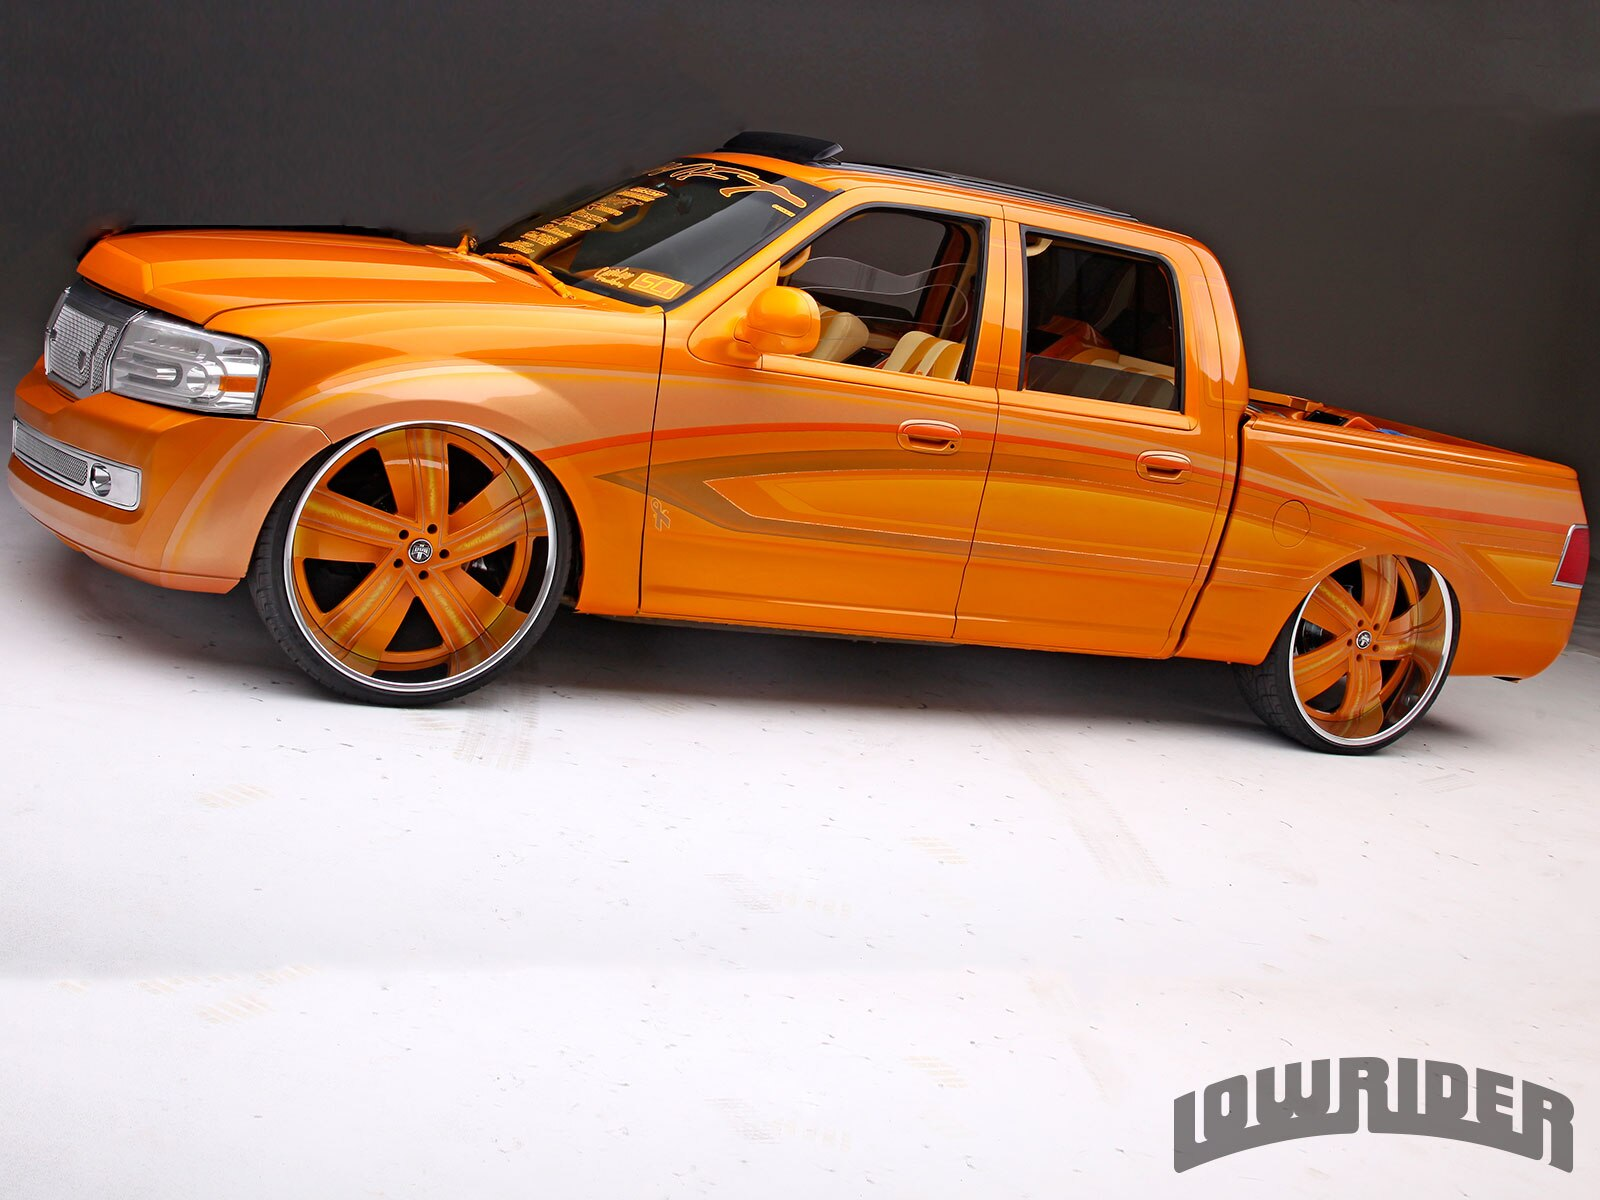 1303-lrmp-03-o-2001-ford-f-150-left-side-view1